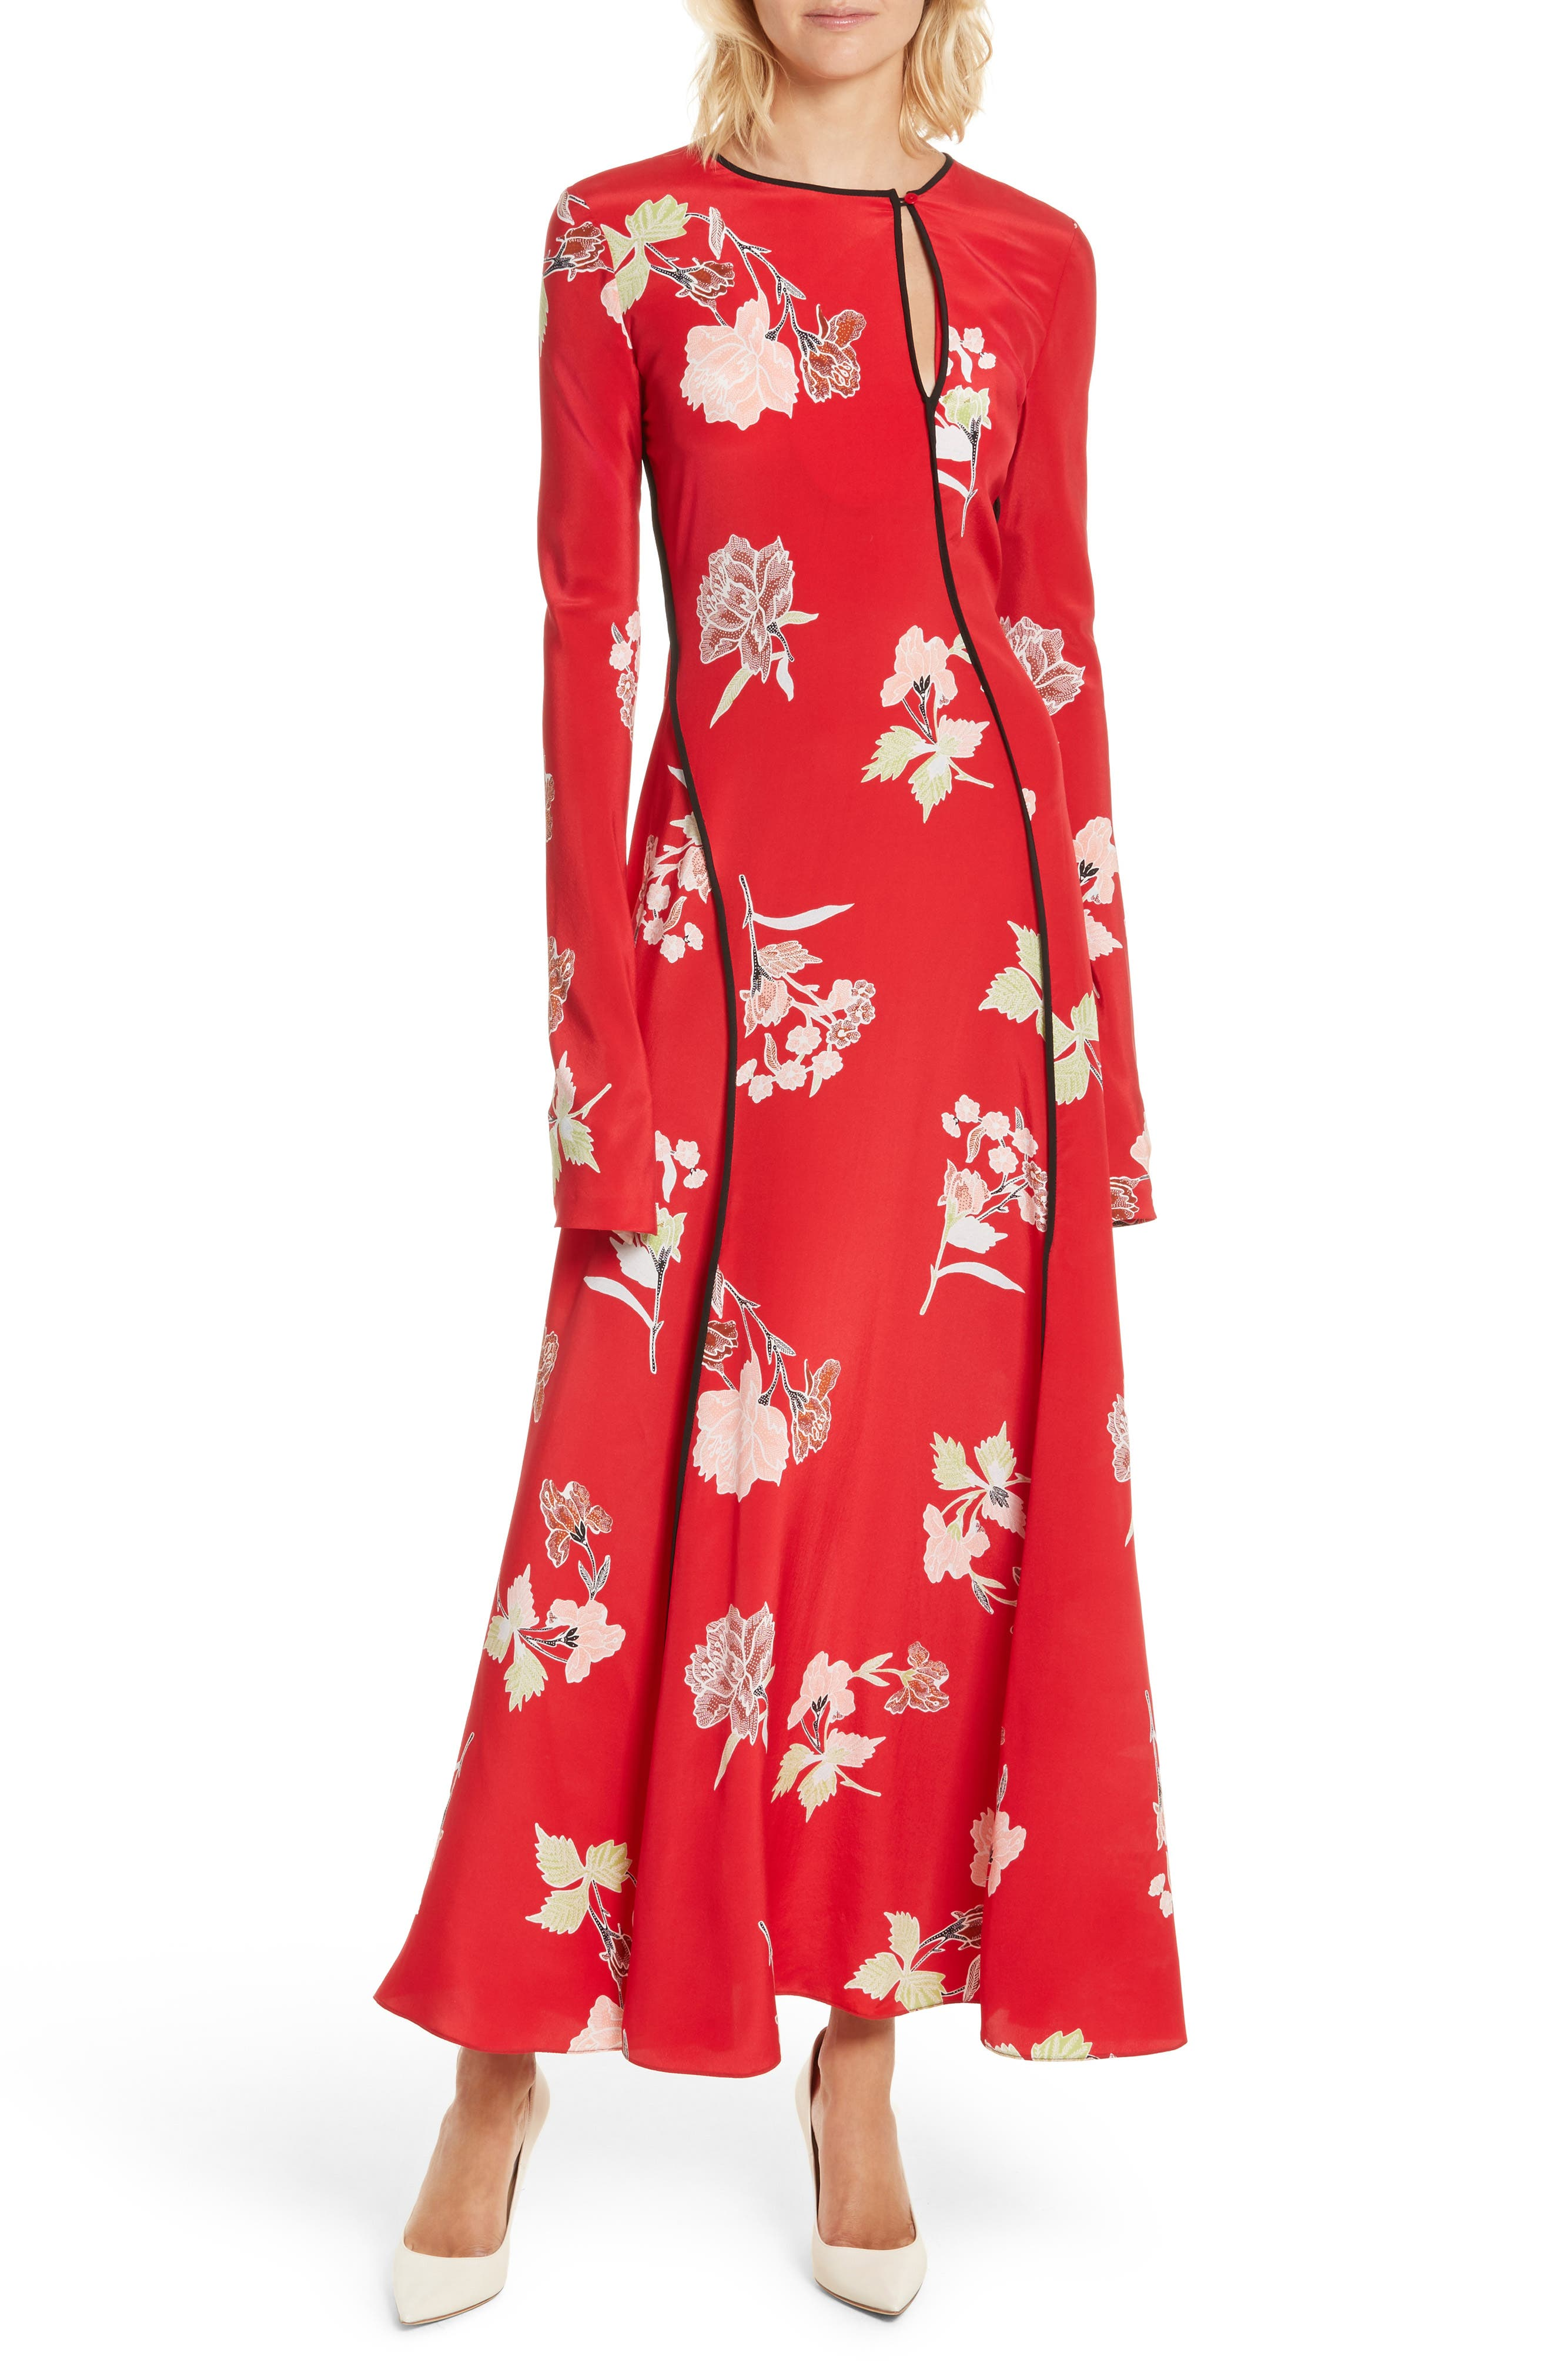 Bias Cut Floral Silk Maxi Dress,                         Main,                         color, Everton Lipstick / Black